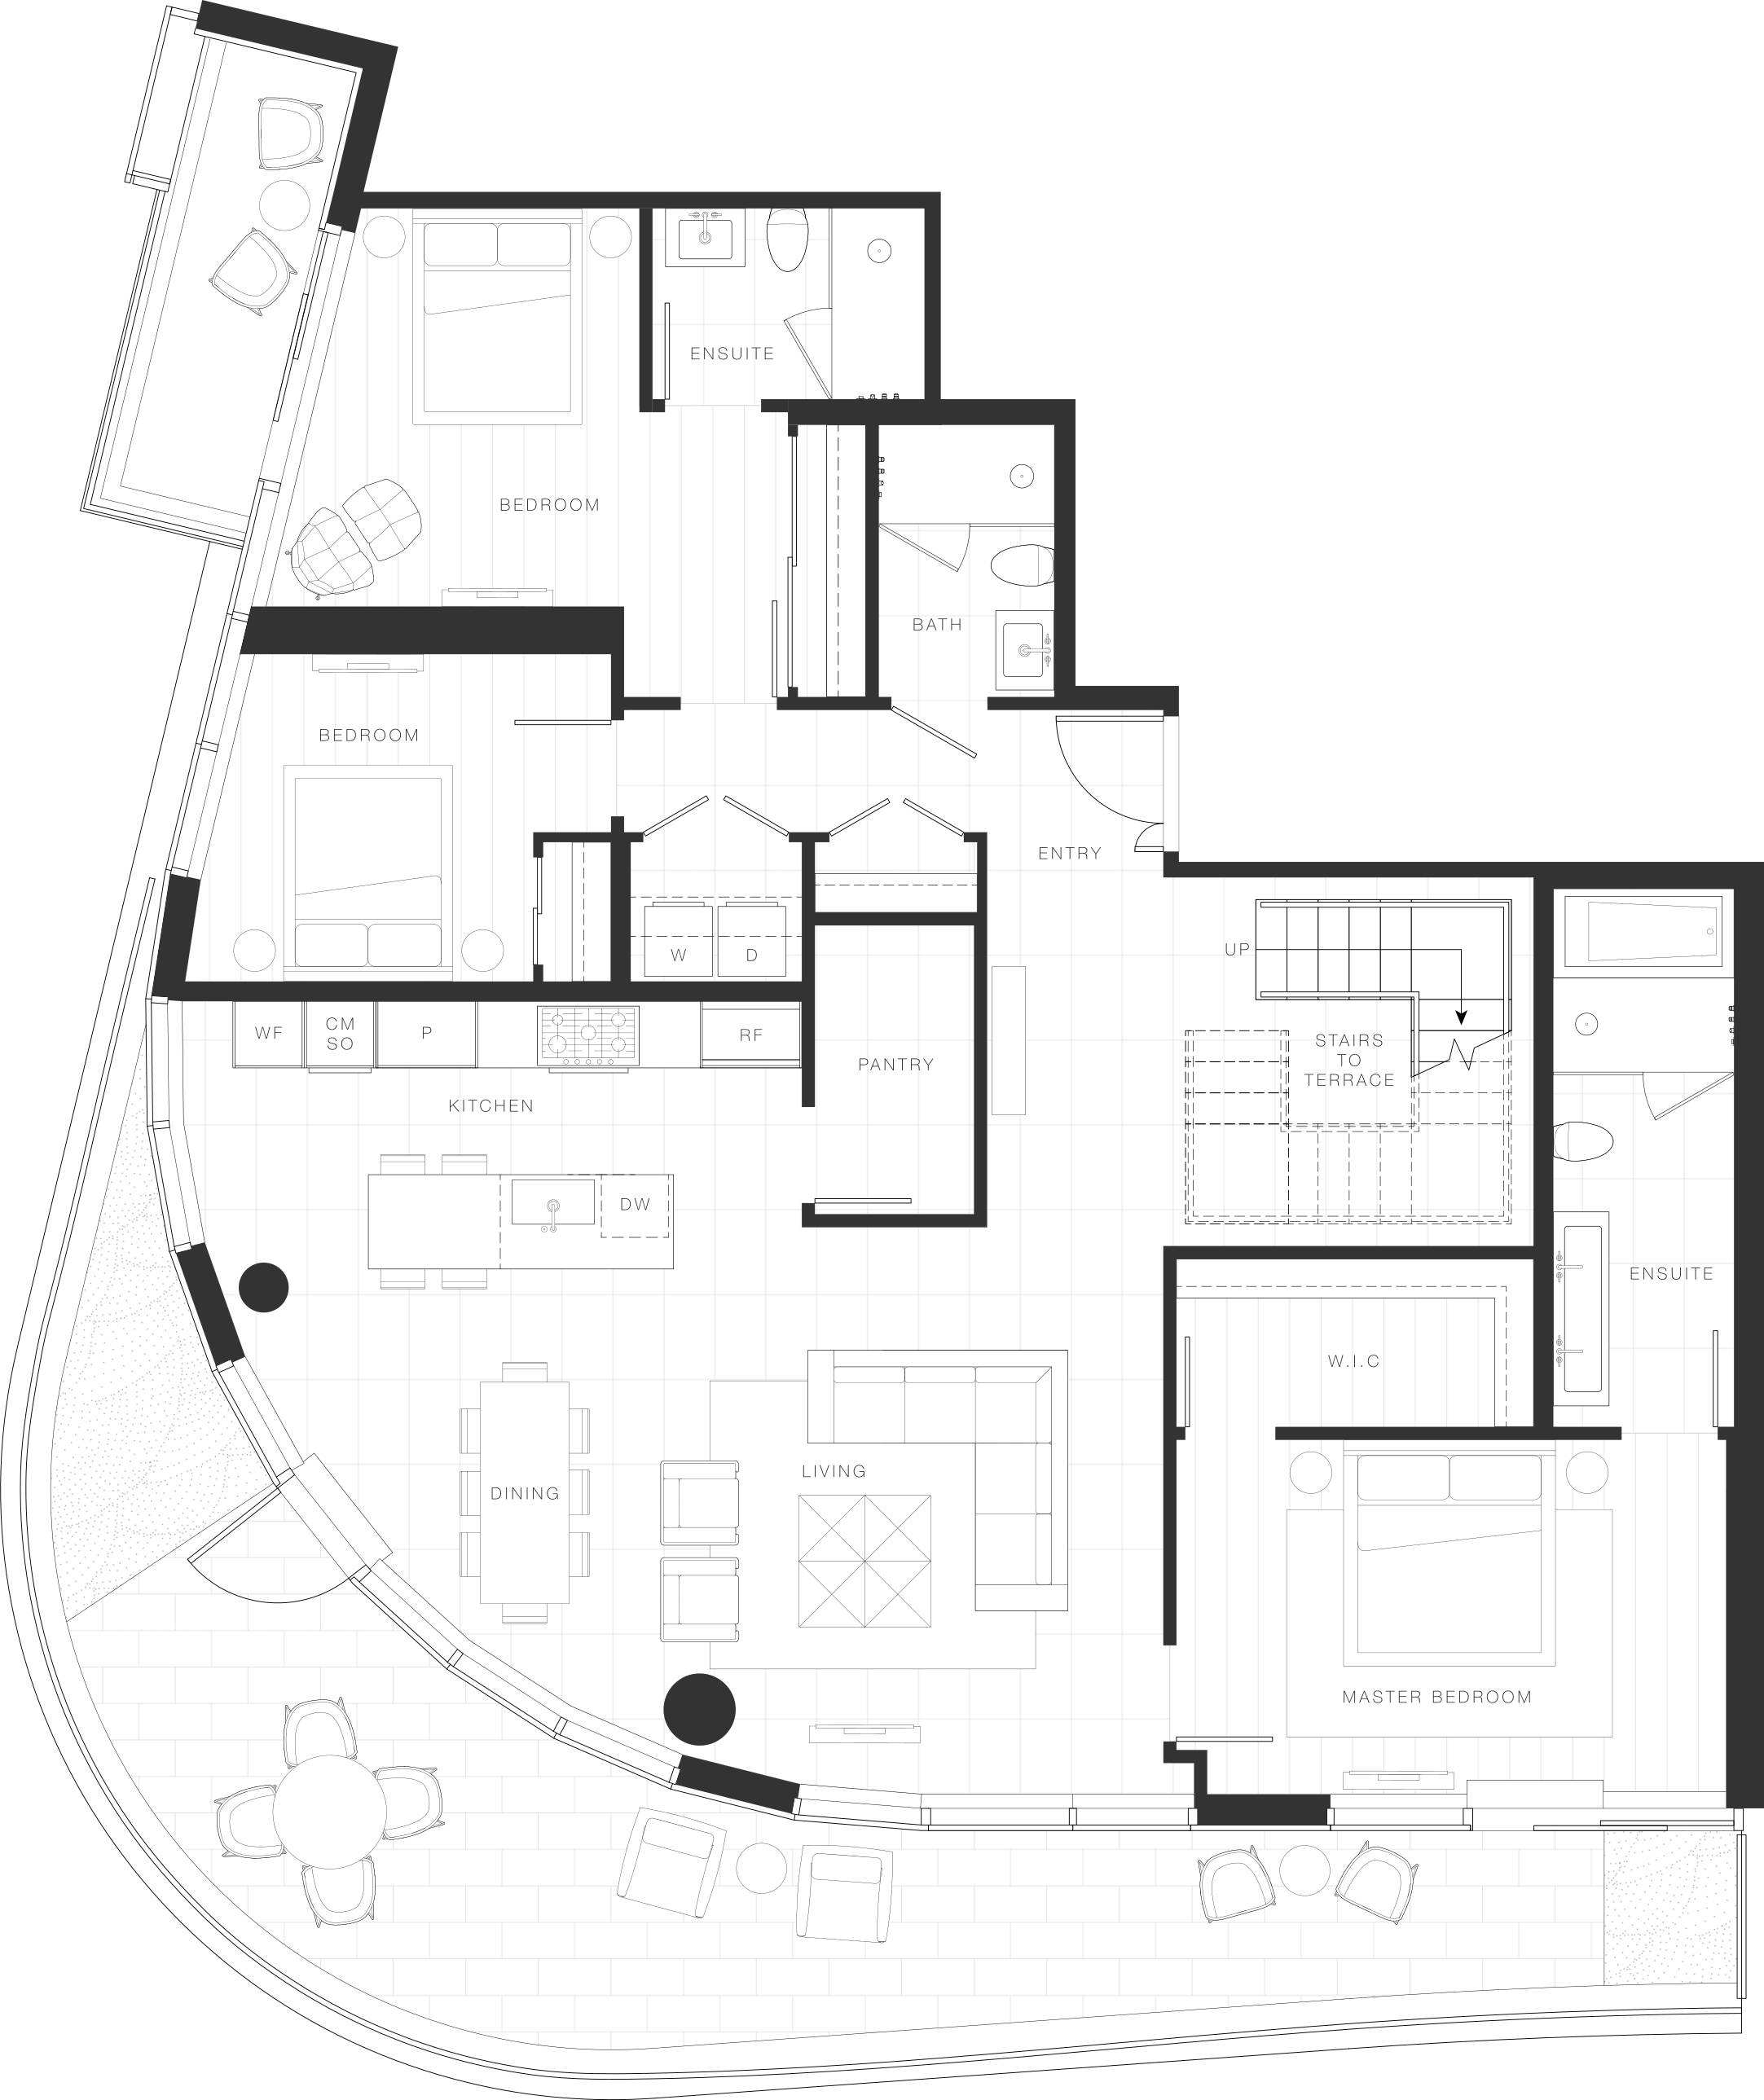 Penthouse Floorplan - Unit 1703